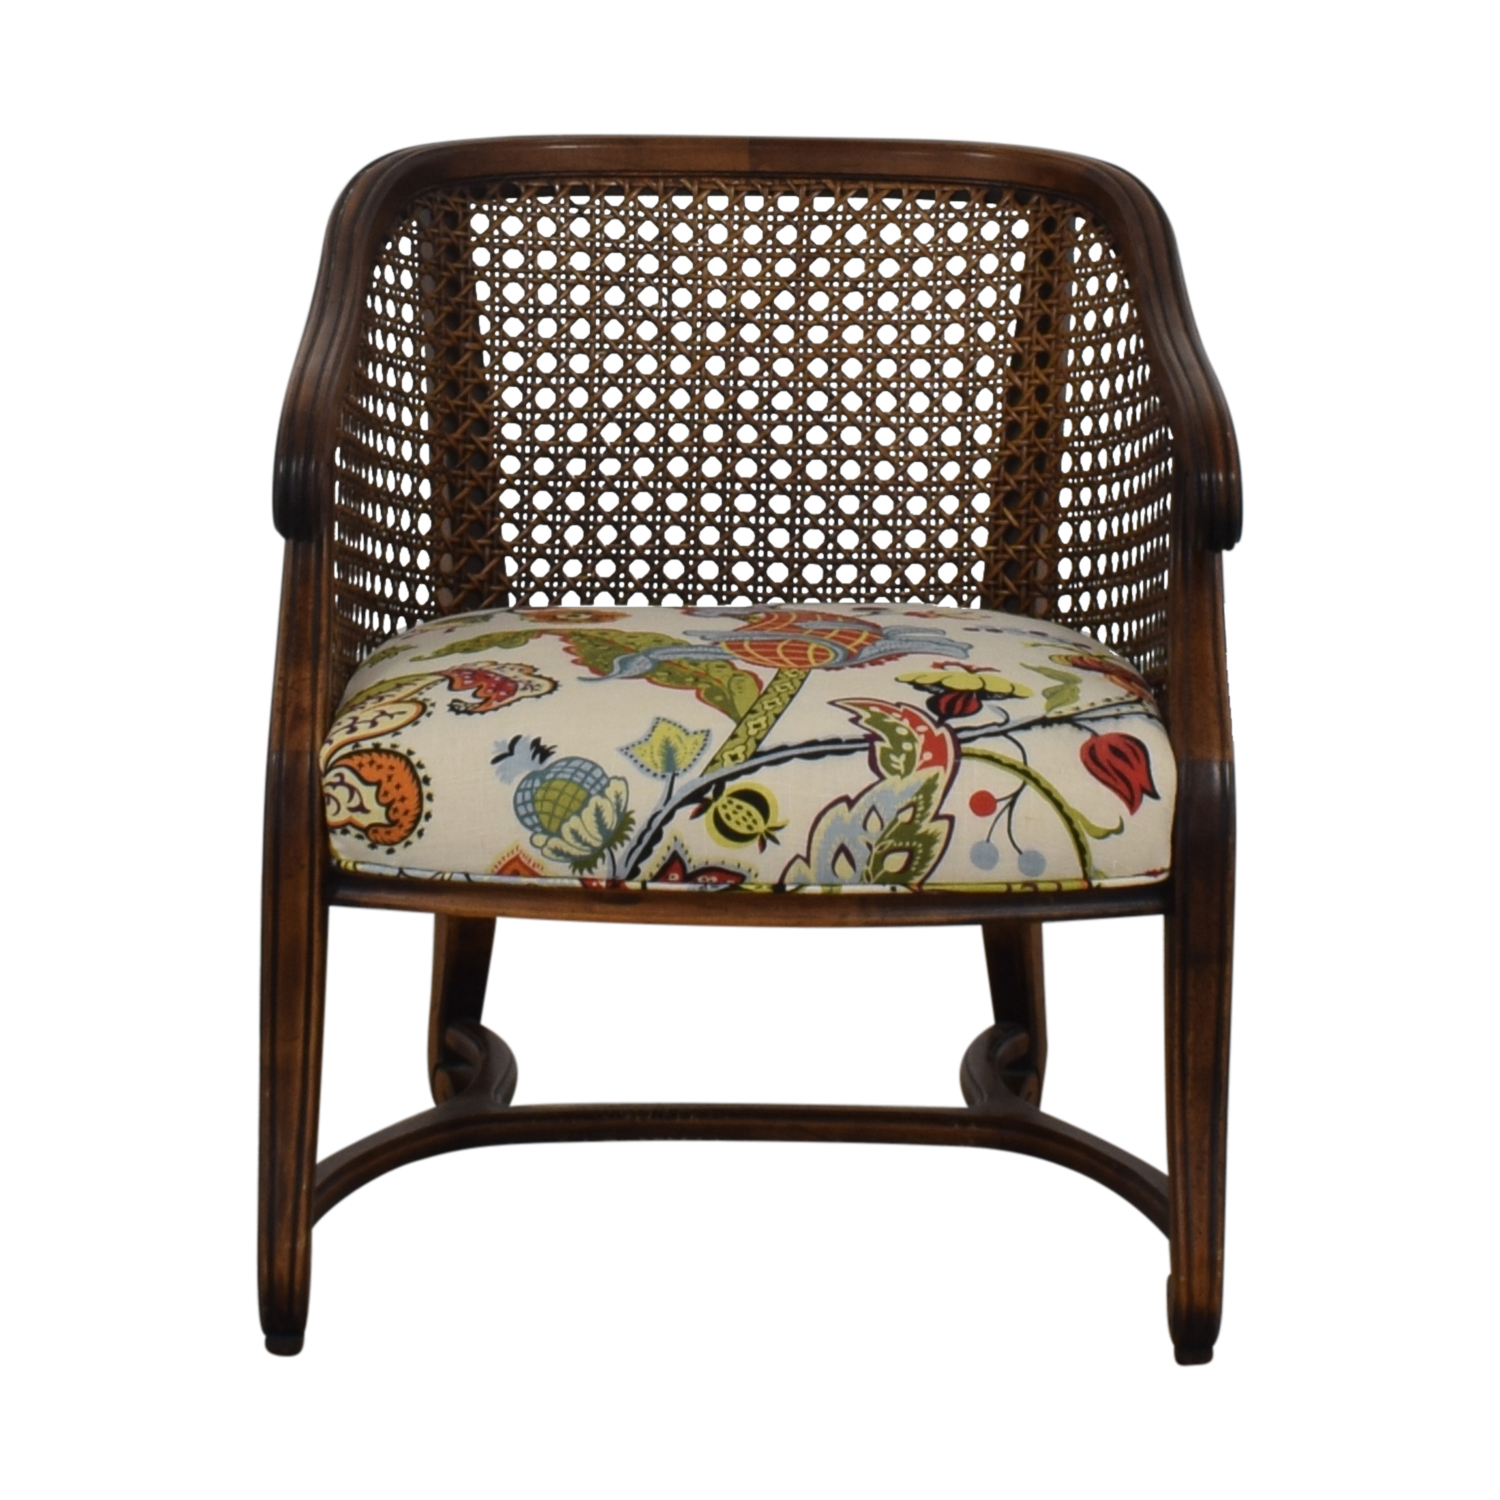 Heirloom Fruitwood Caned Armchair multi